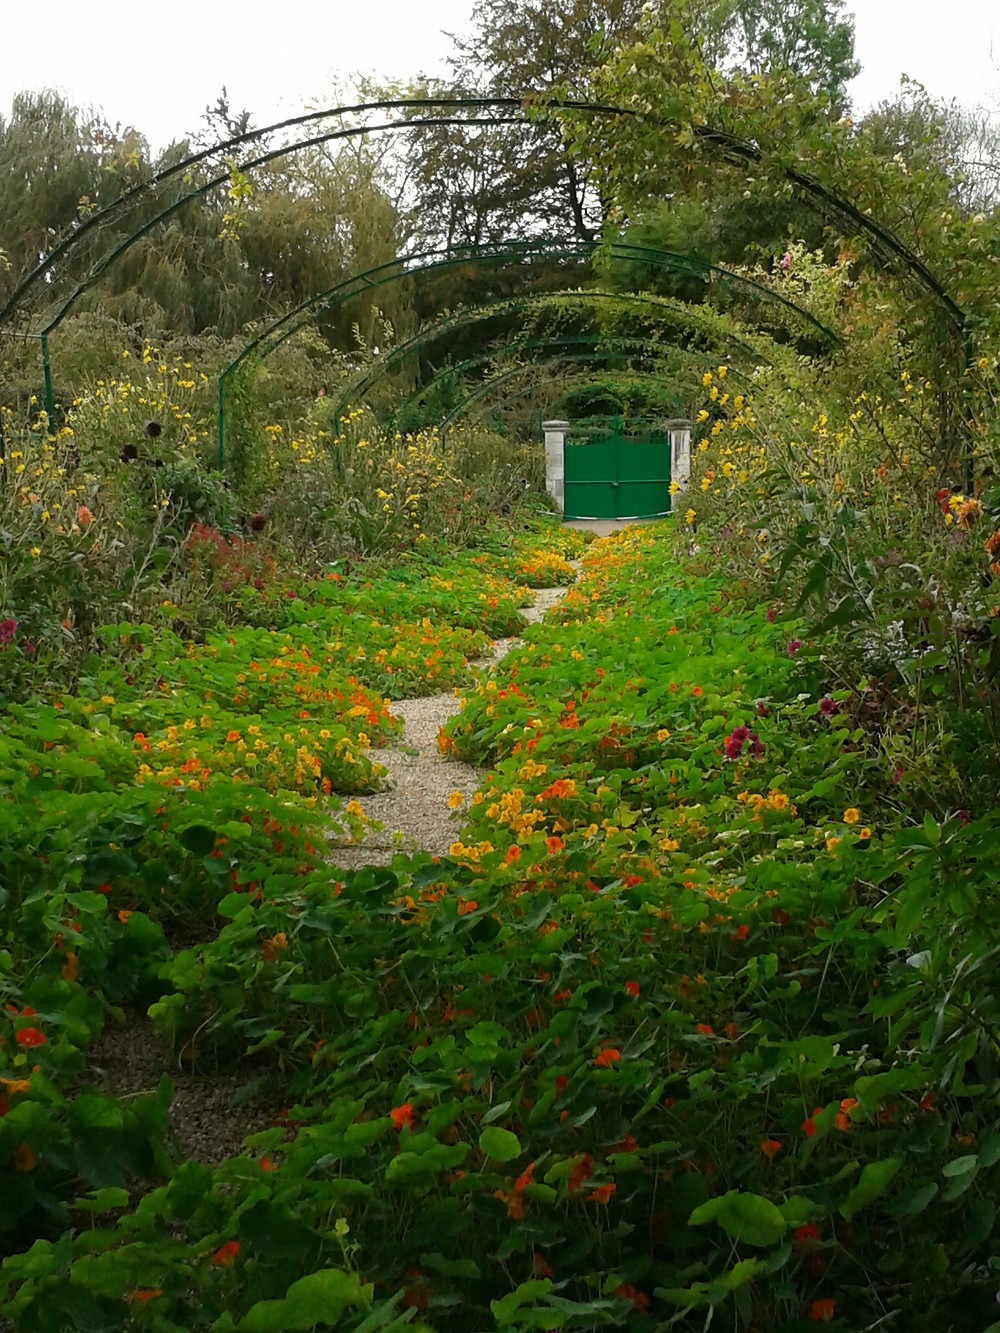 Nasturtiums growing over a garden path leading to a green gate.